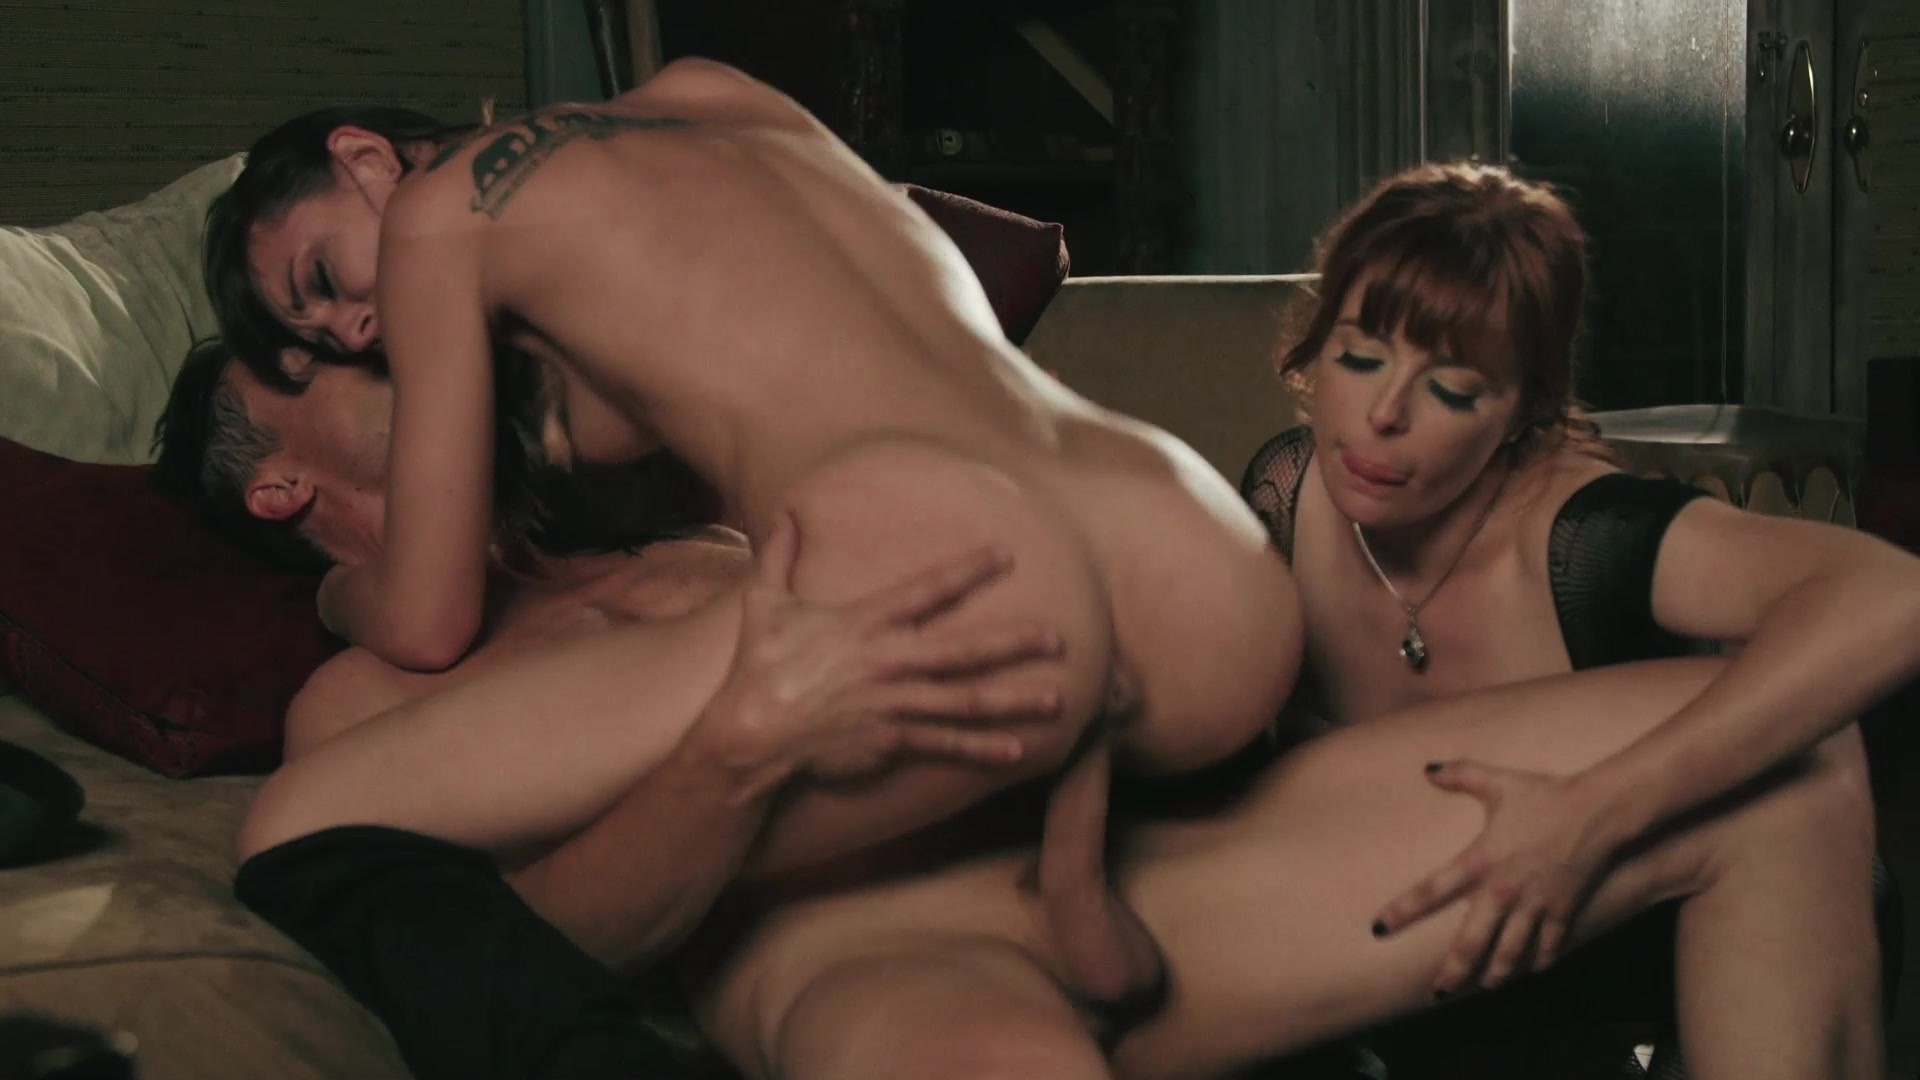 Scene with Richie Calhoun, Penny Pax and Aidra Fox - image 19 out of 20